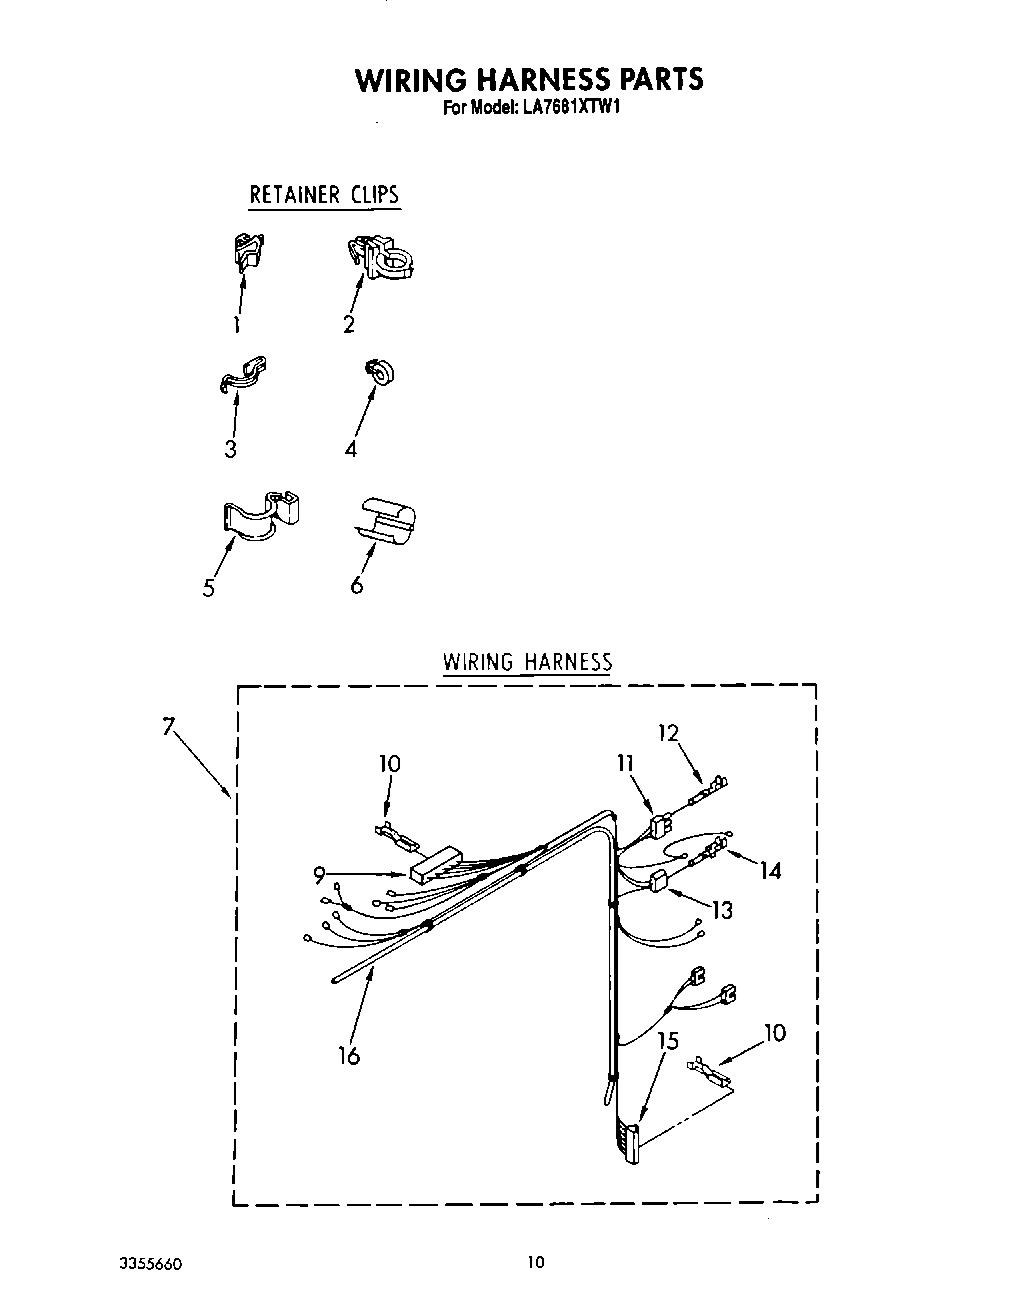 Wiring Harness Clip 90016 Another Blog About Diagram 1986 Yamaha Fazer Diagrams La7680xtg1 Whirlpool Corporation Appliance Parts Rh Savemoreonparts Com